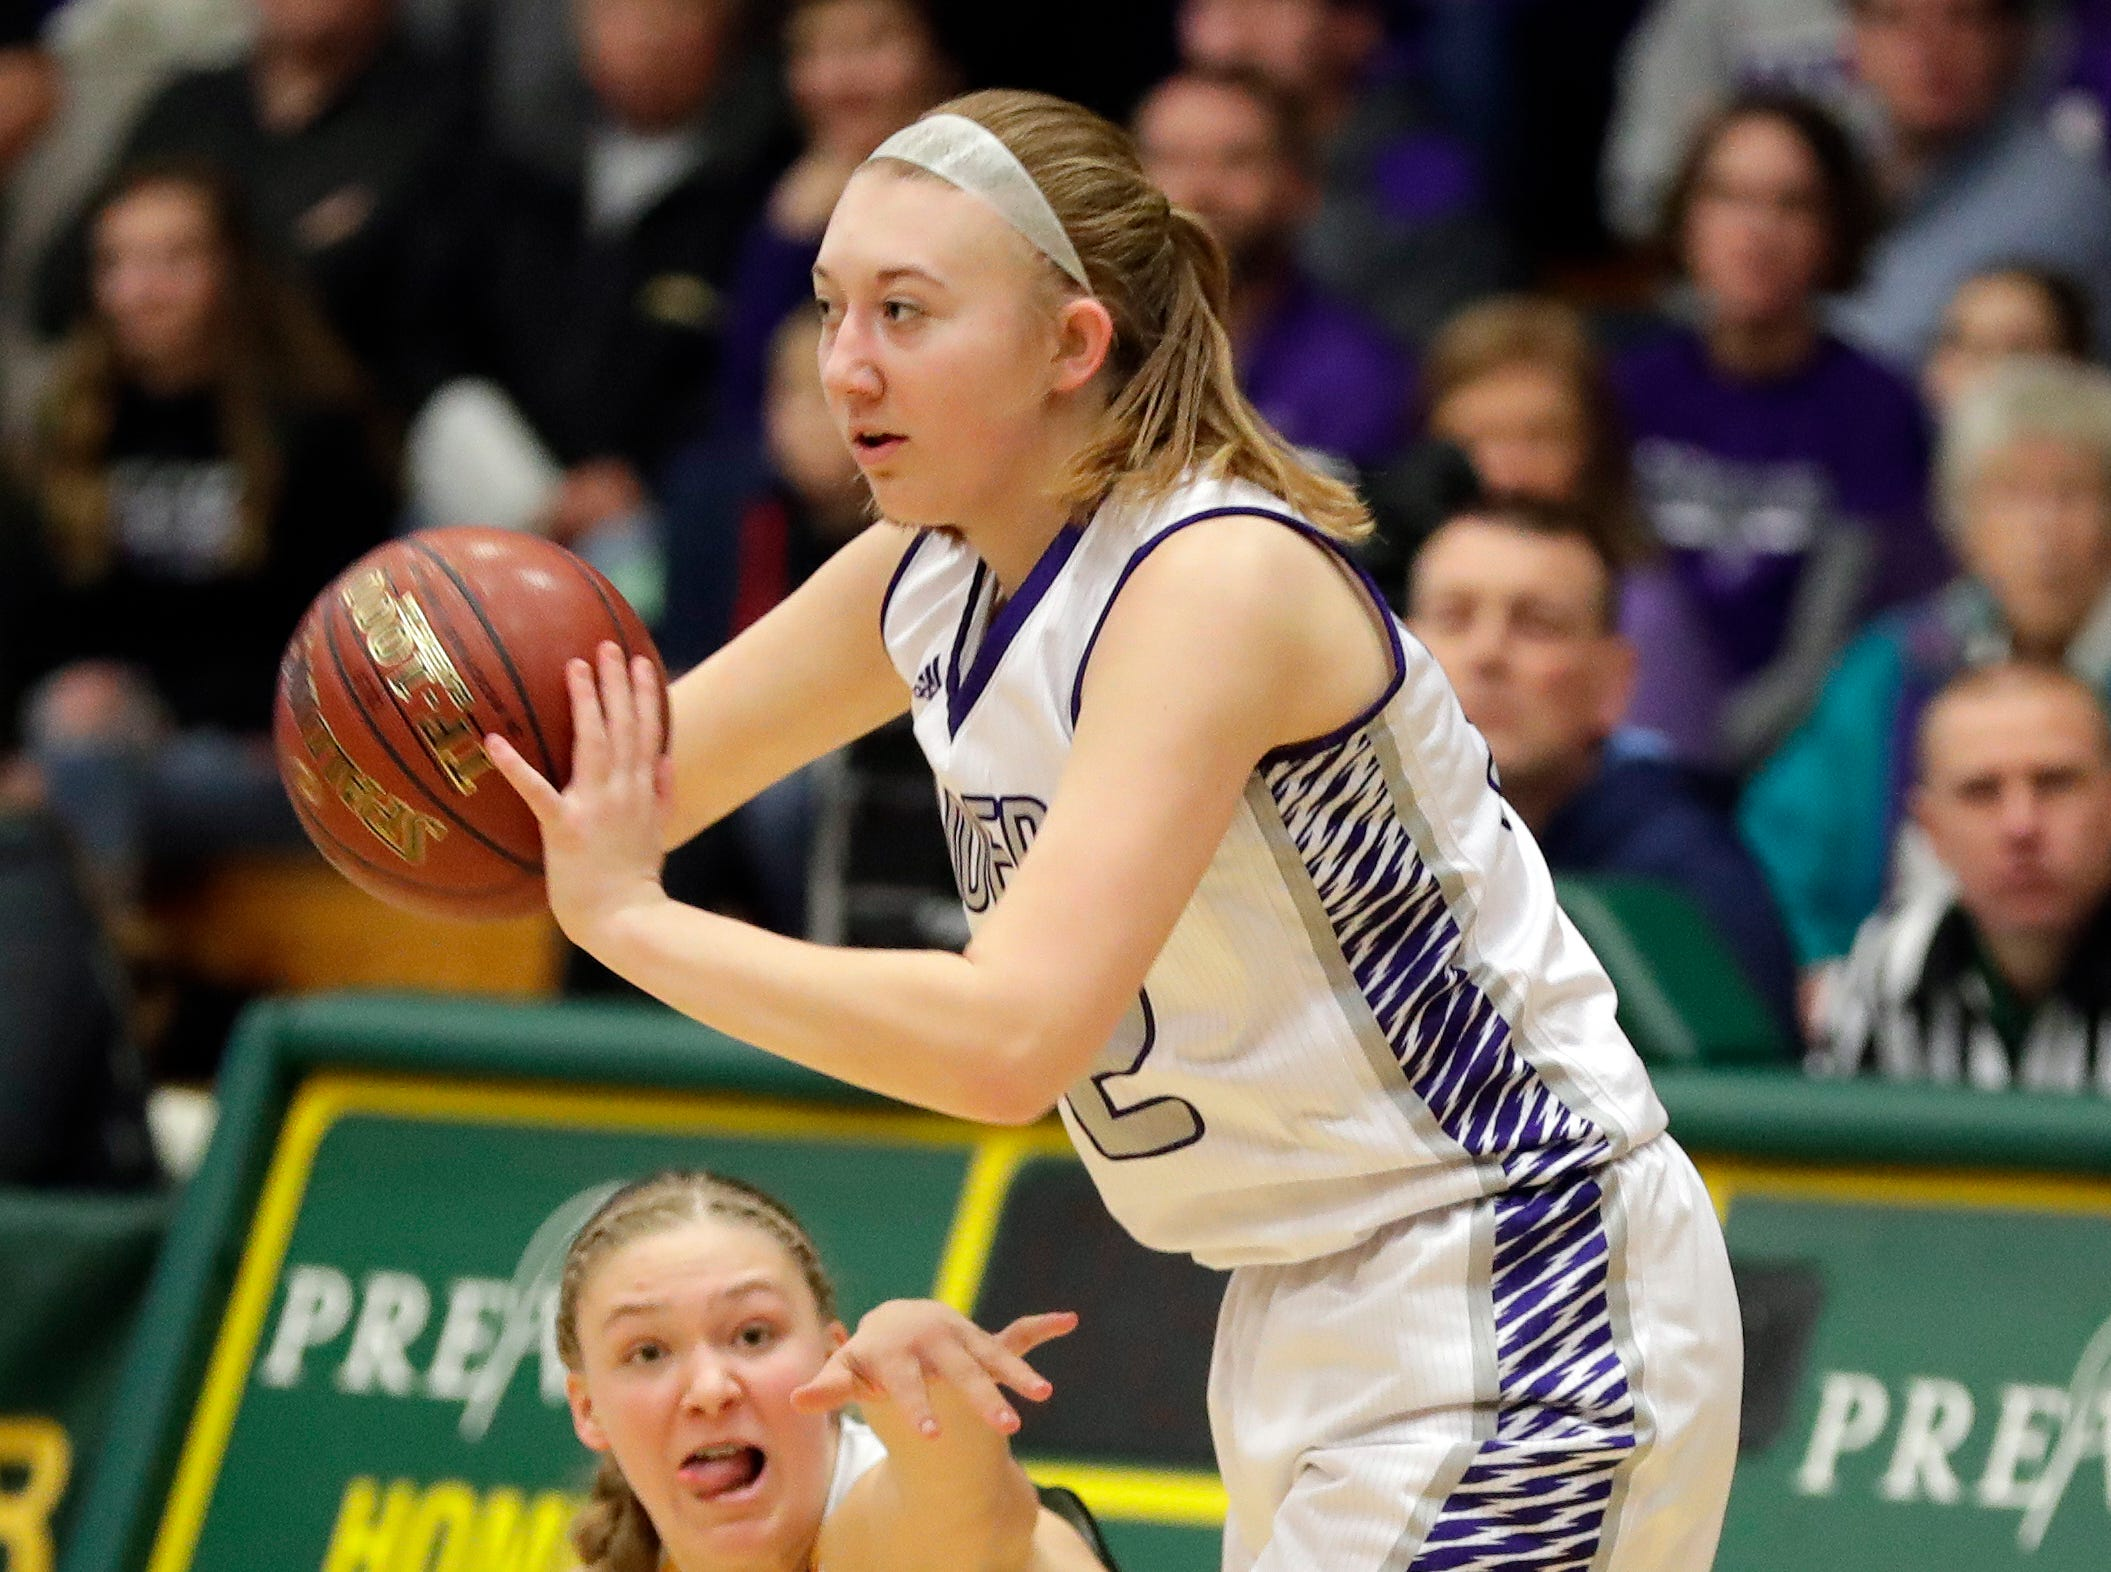 Kiel's Rachel Muehlbauer (32) keeps the ball away from an opponent during a WIAA Division 3 girls basketball sectional championship against Freedom on March 2, 2019 at Ashwaubenon High School.  Freedom defeated Kiel 53-40.